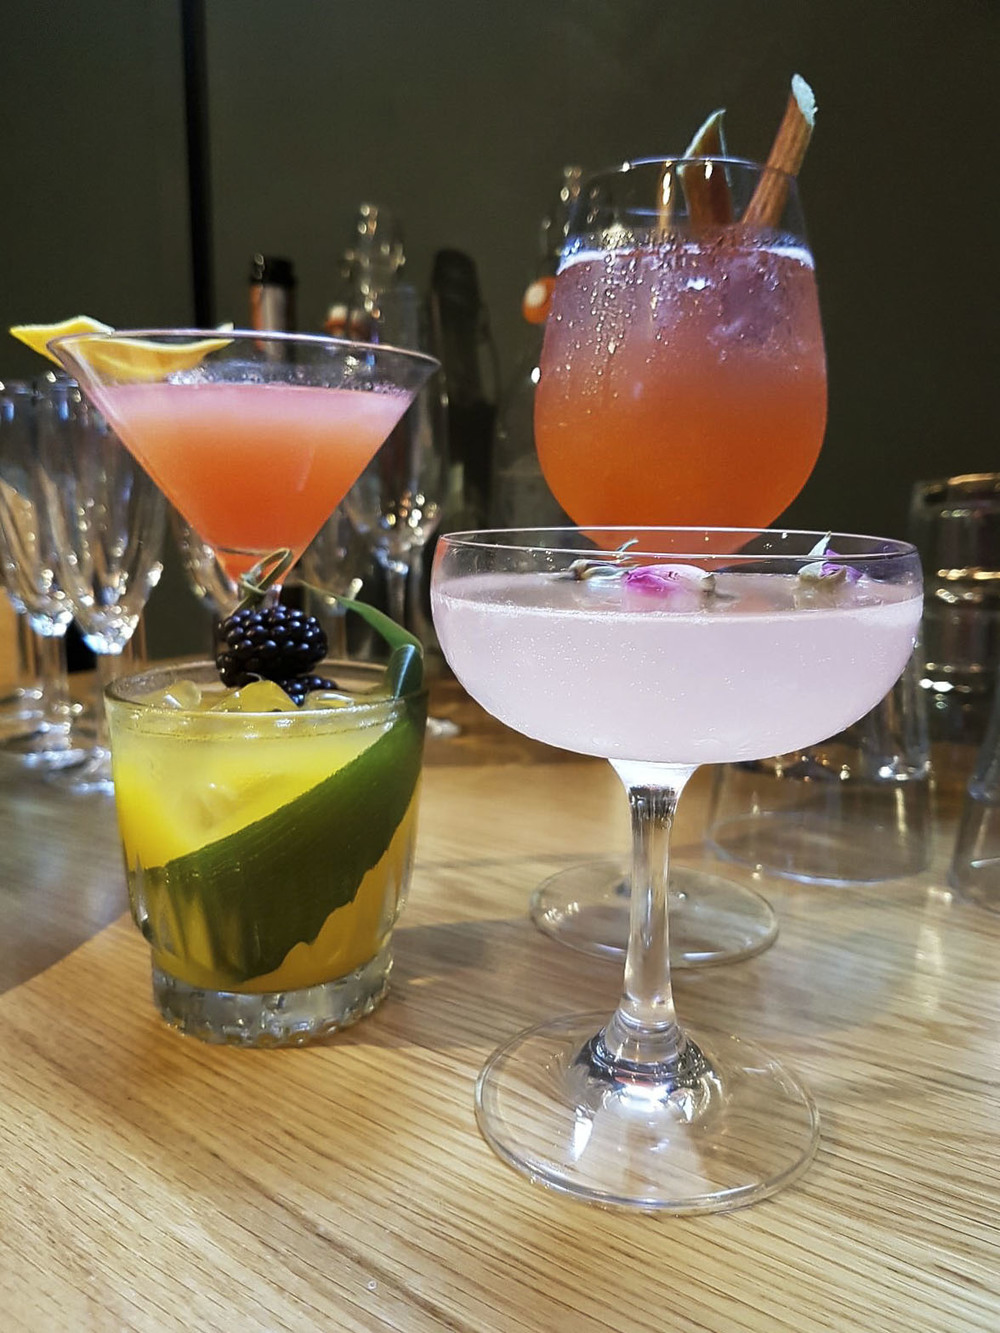 The taste of summer - four delicious cocktails, each with a unique flavour